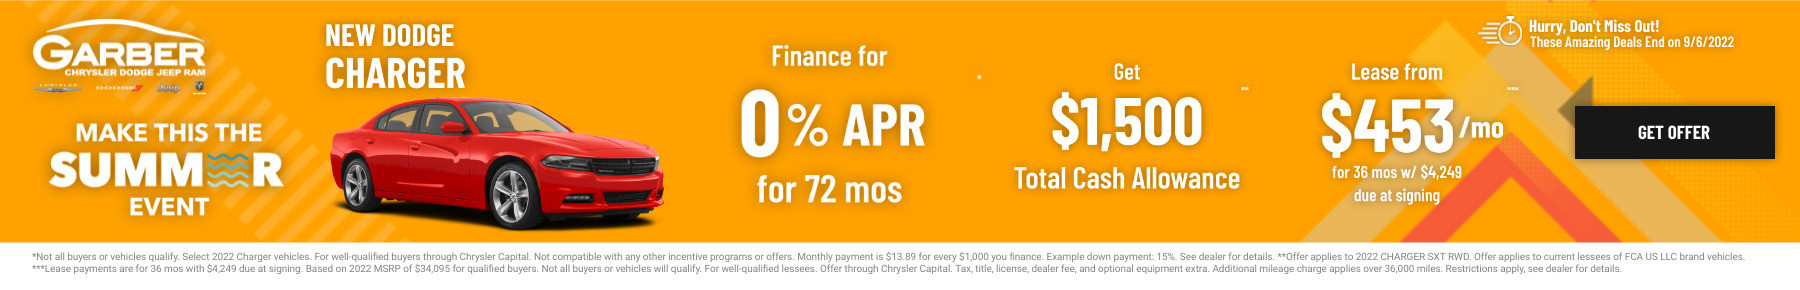 New Dodge Charger Current Deals and Offers in Saginaw, MI